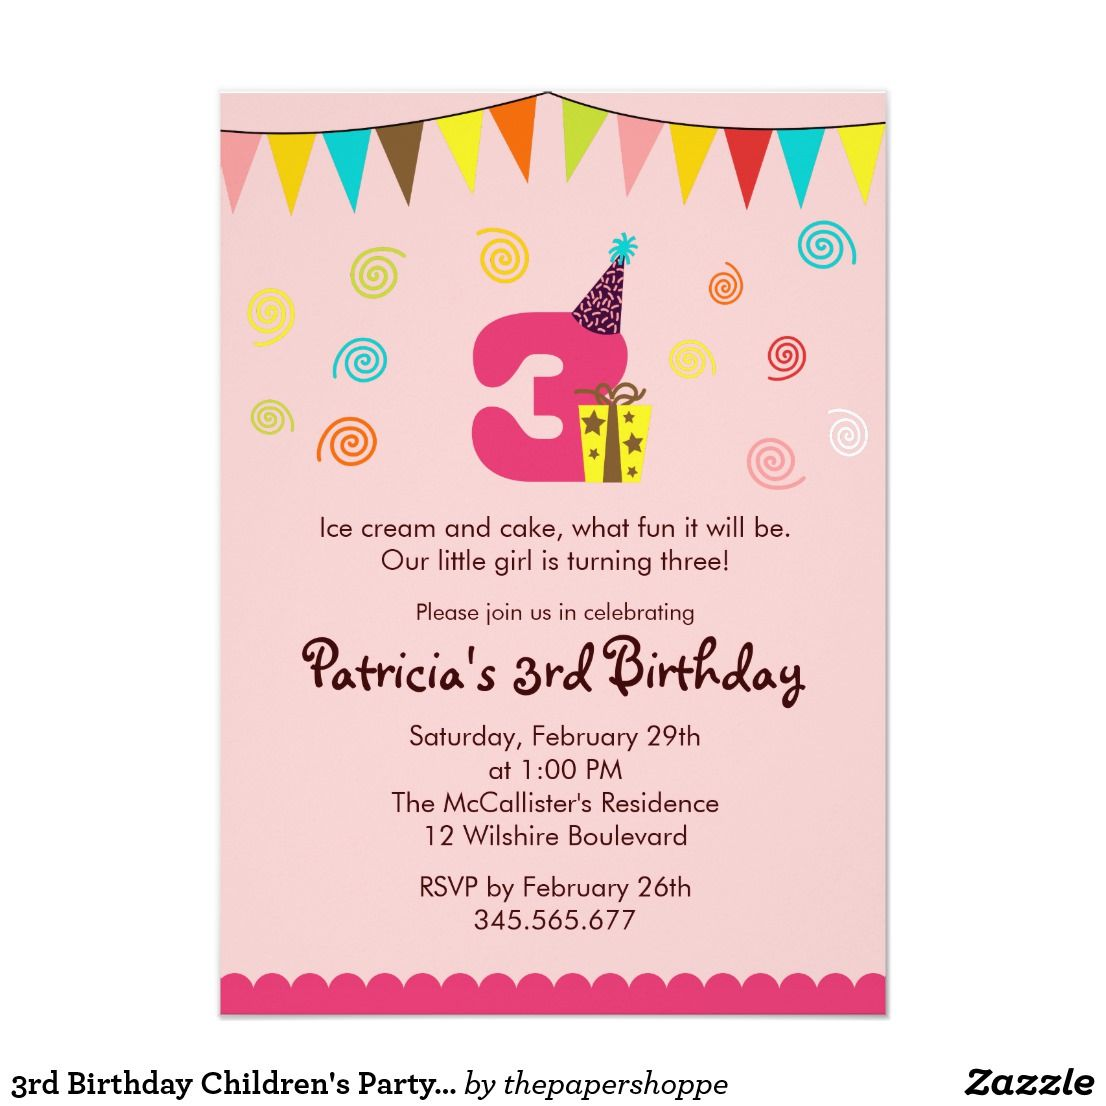 Invitation For Birthday Essay. First birthday invitation wording and invitations college graduate  sample resume examples of a good essay introduction dental hygiene cover letter 3rd Birthday Children s Party Invitation You can customize this